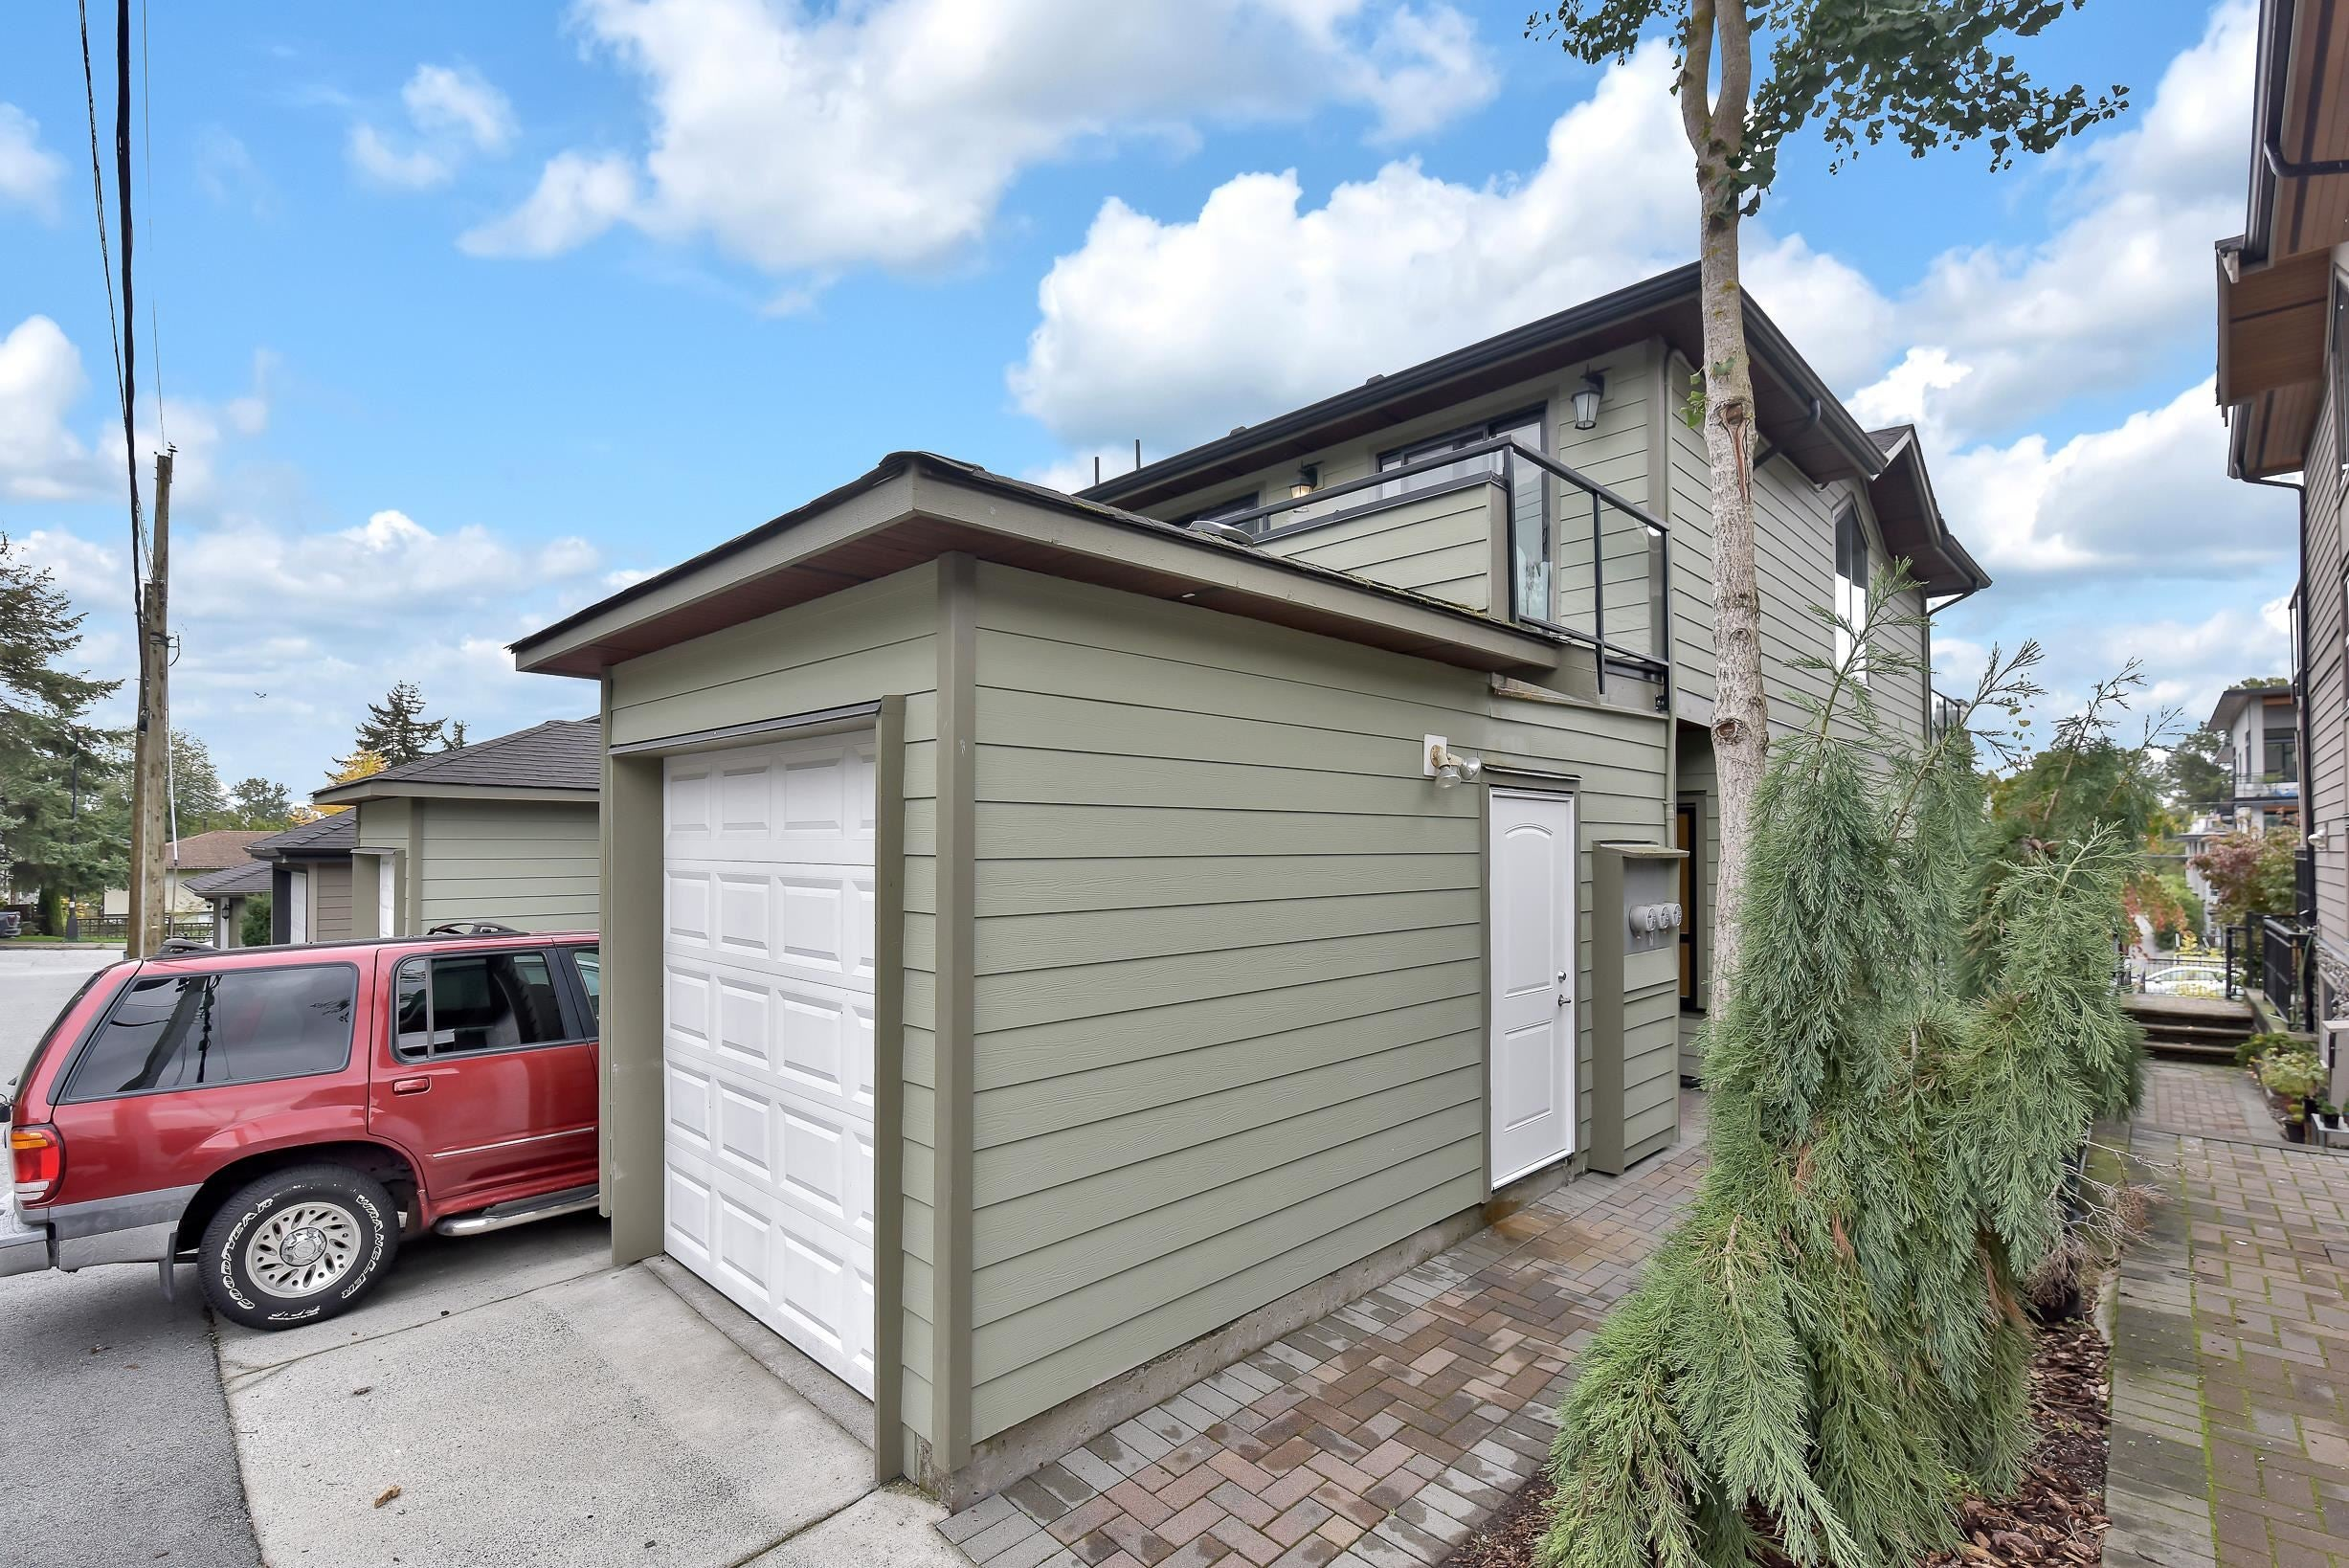 1430 BEWICKE AVENUE - Central Lonsdale 1/2 Duplex for sale, 6 Bedrooms (R2625651) - #5